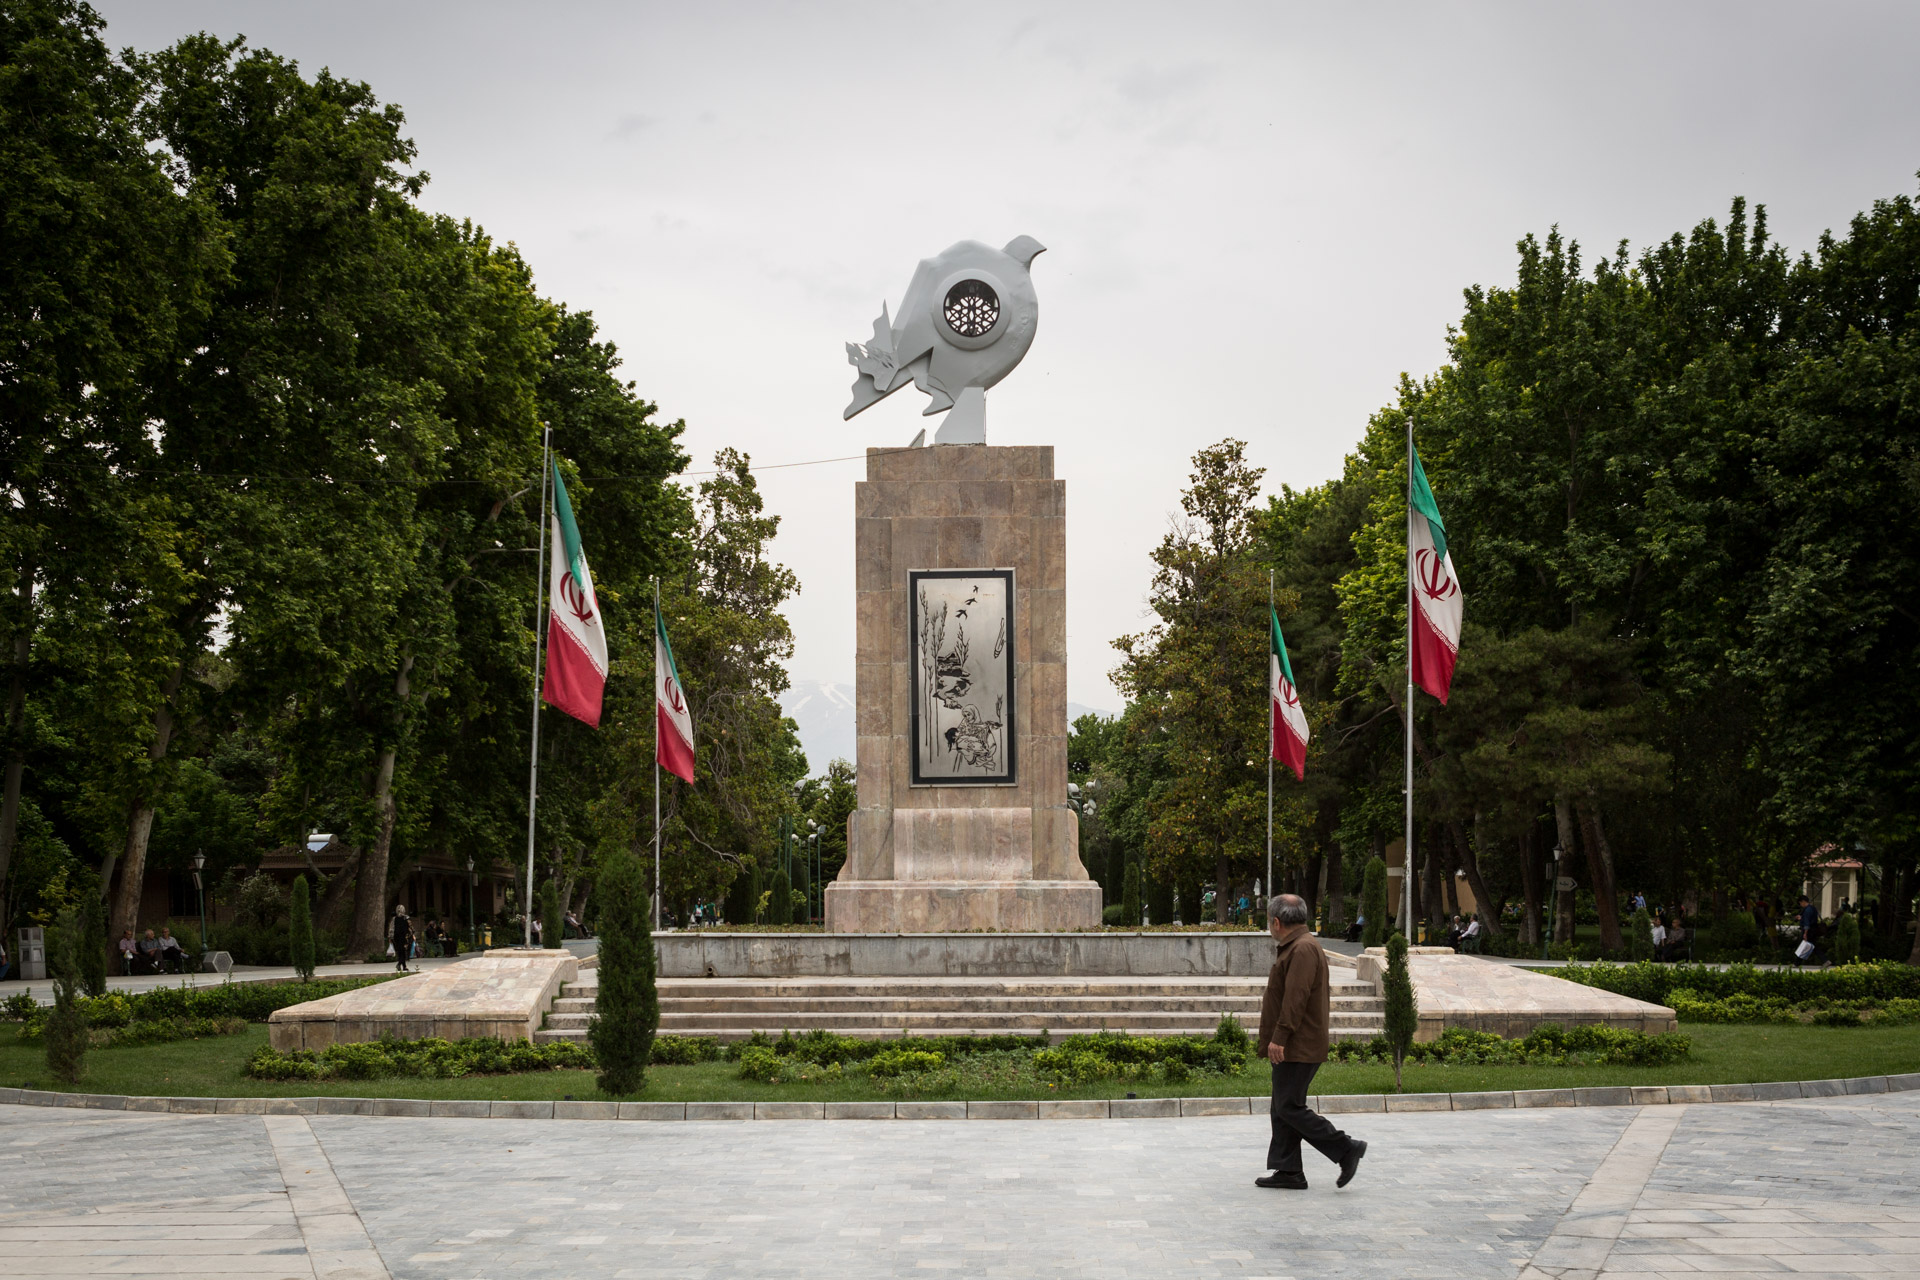 In Shahr park in downtown Tehran, a memorial reminds of the victims of the gas attacks on Sardasht on June 28th, 1987. Sardasht was the first city being attacked with chemical weapons by Iraqi forces in eight years of war.